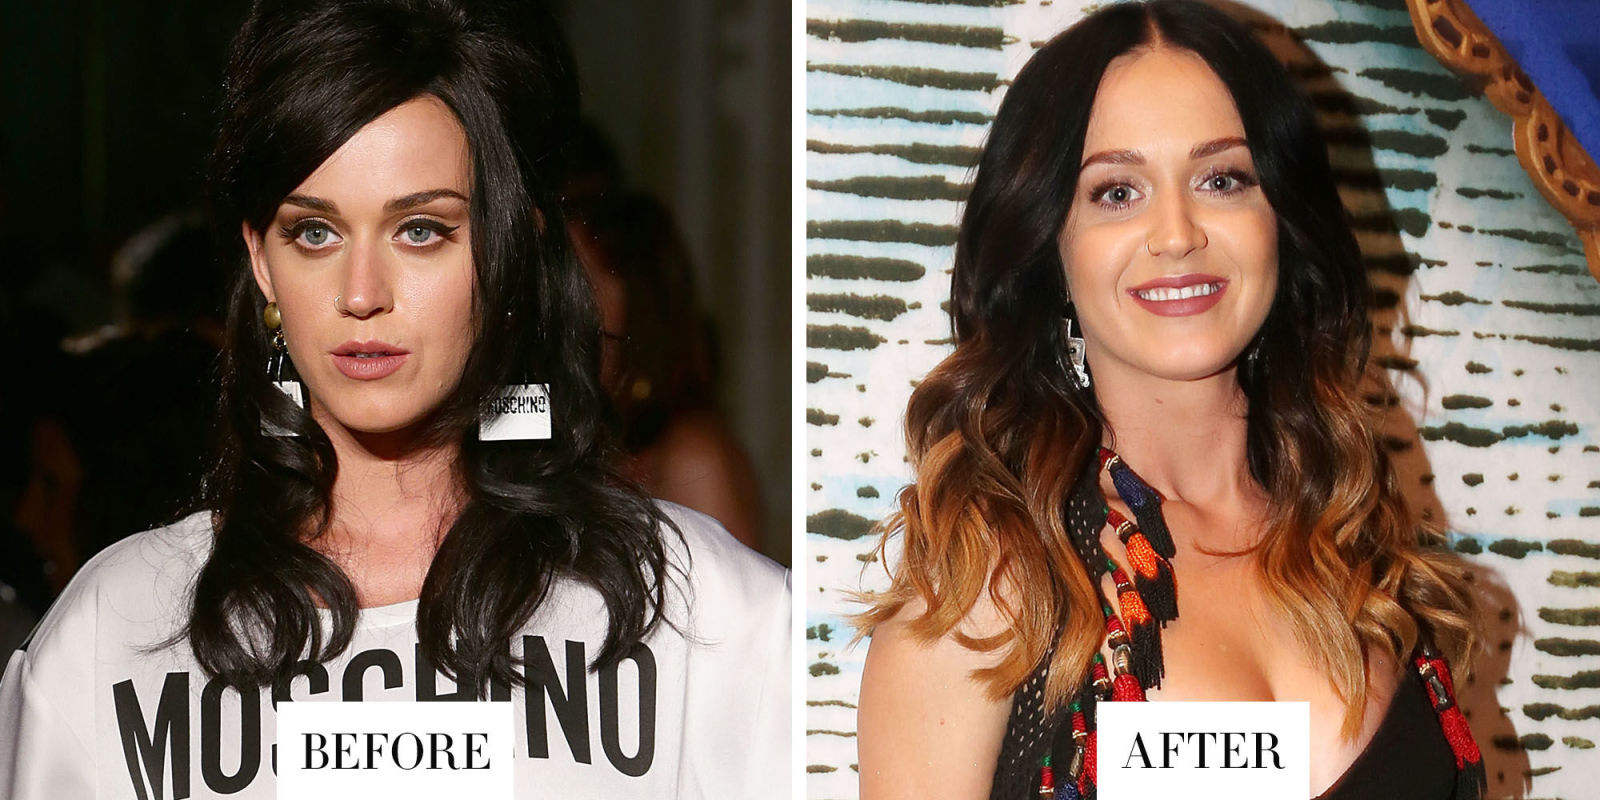 gallery-1441907927-hbz-hair-transformation-katy-perry